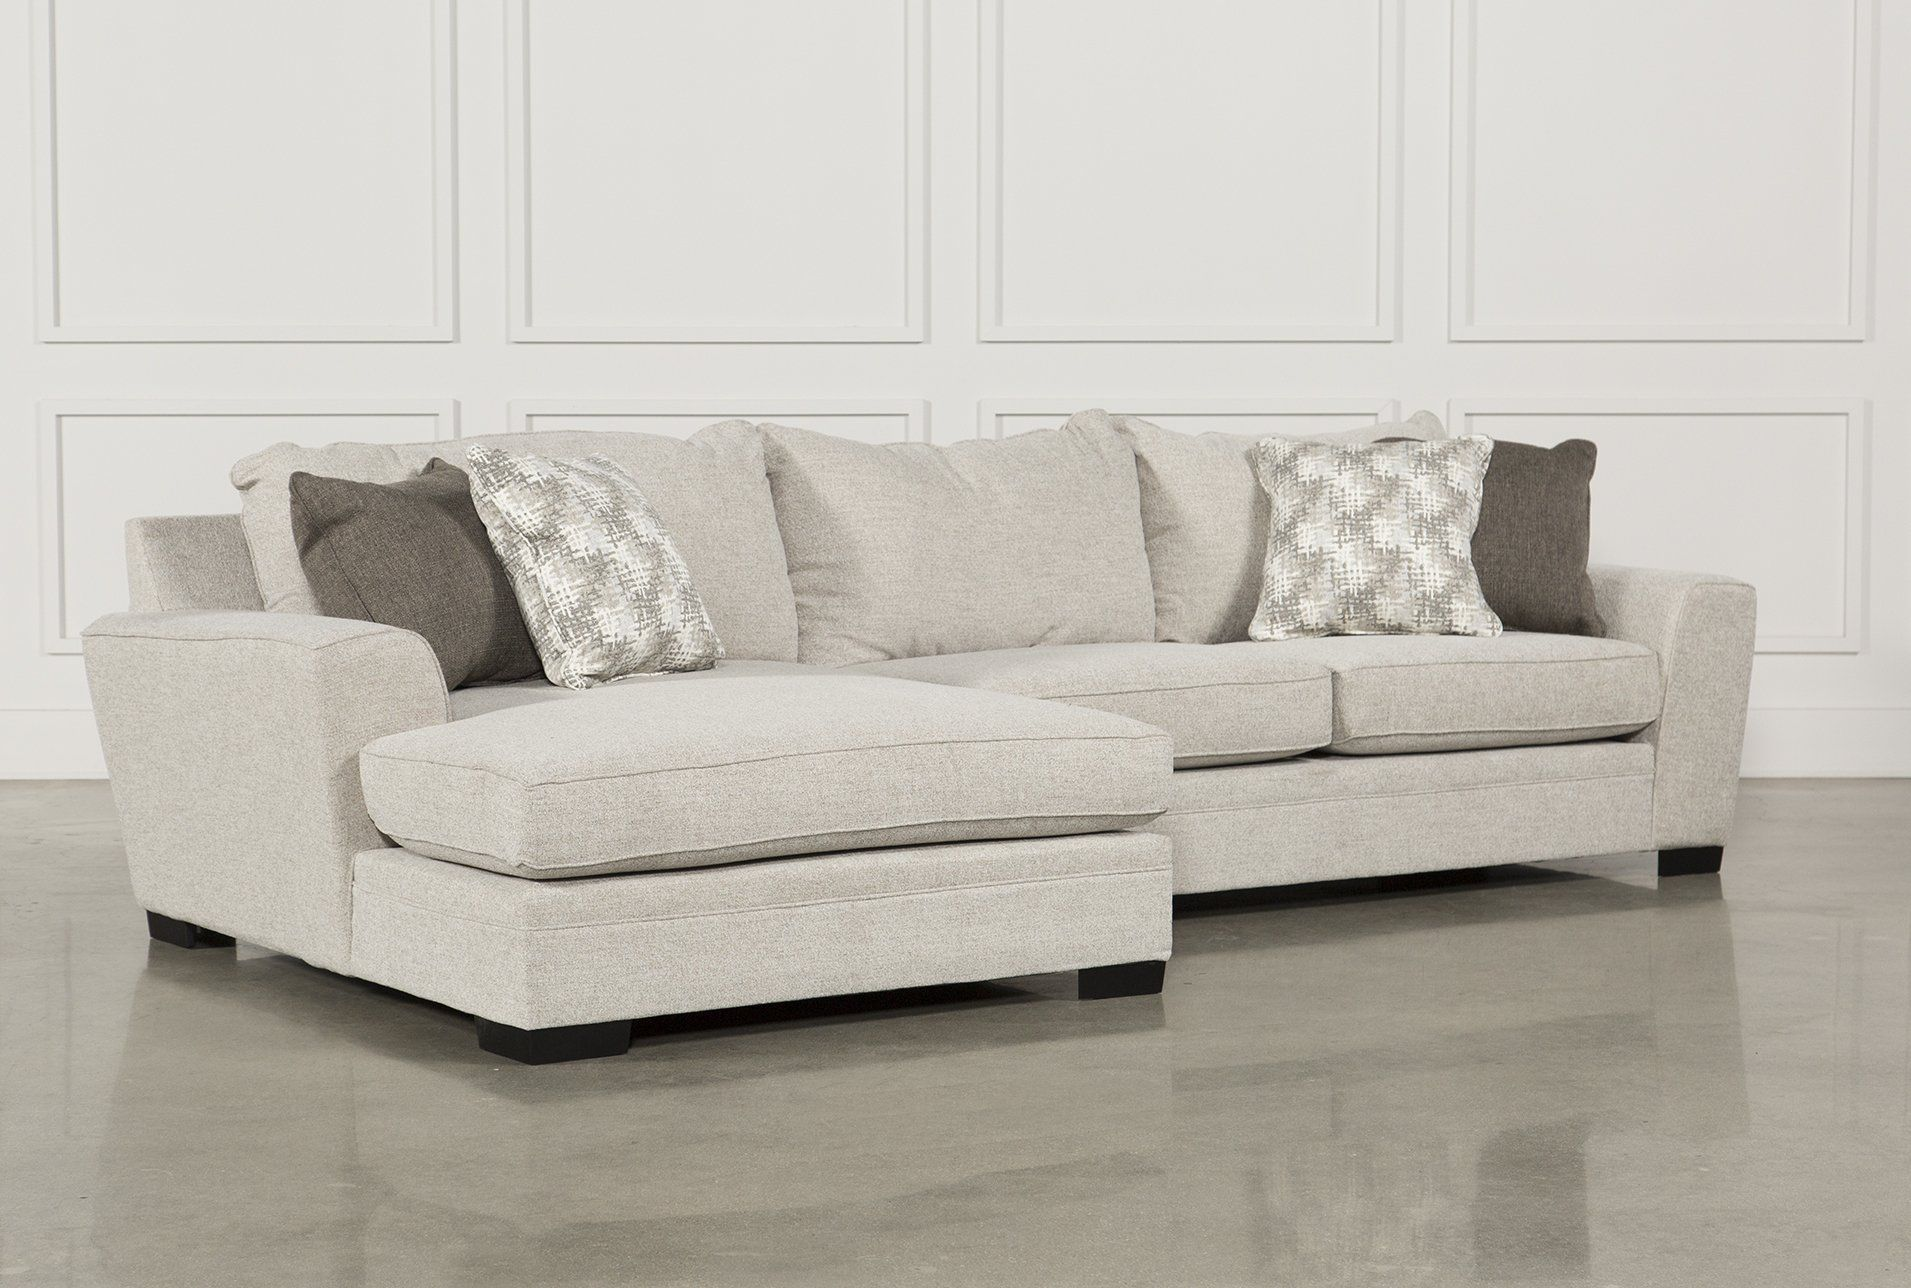 Delano 2 Piece Sectional Wlaf Oversized Chaise, Beige, Sofas